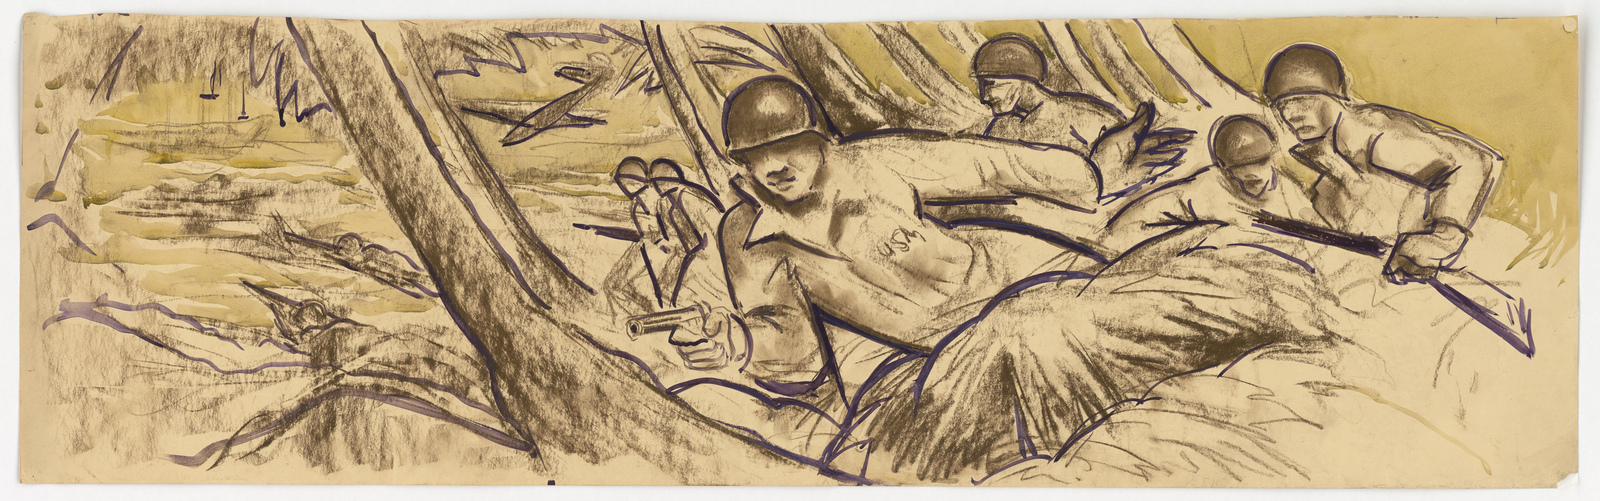 [Soldiers fighting in a wooded area] (Information on back: Guadalcanal Mural, X. Gonzalez) [X. Gonzalez]